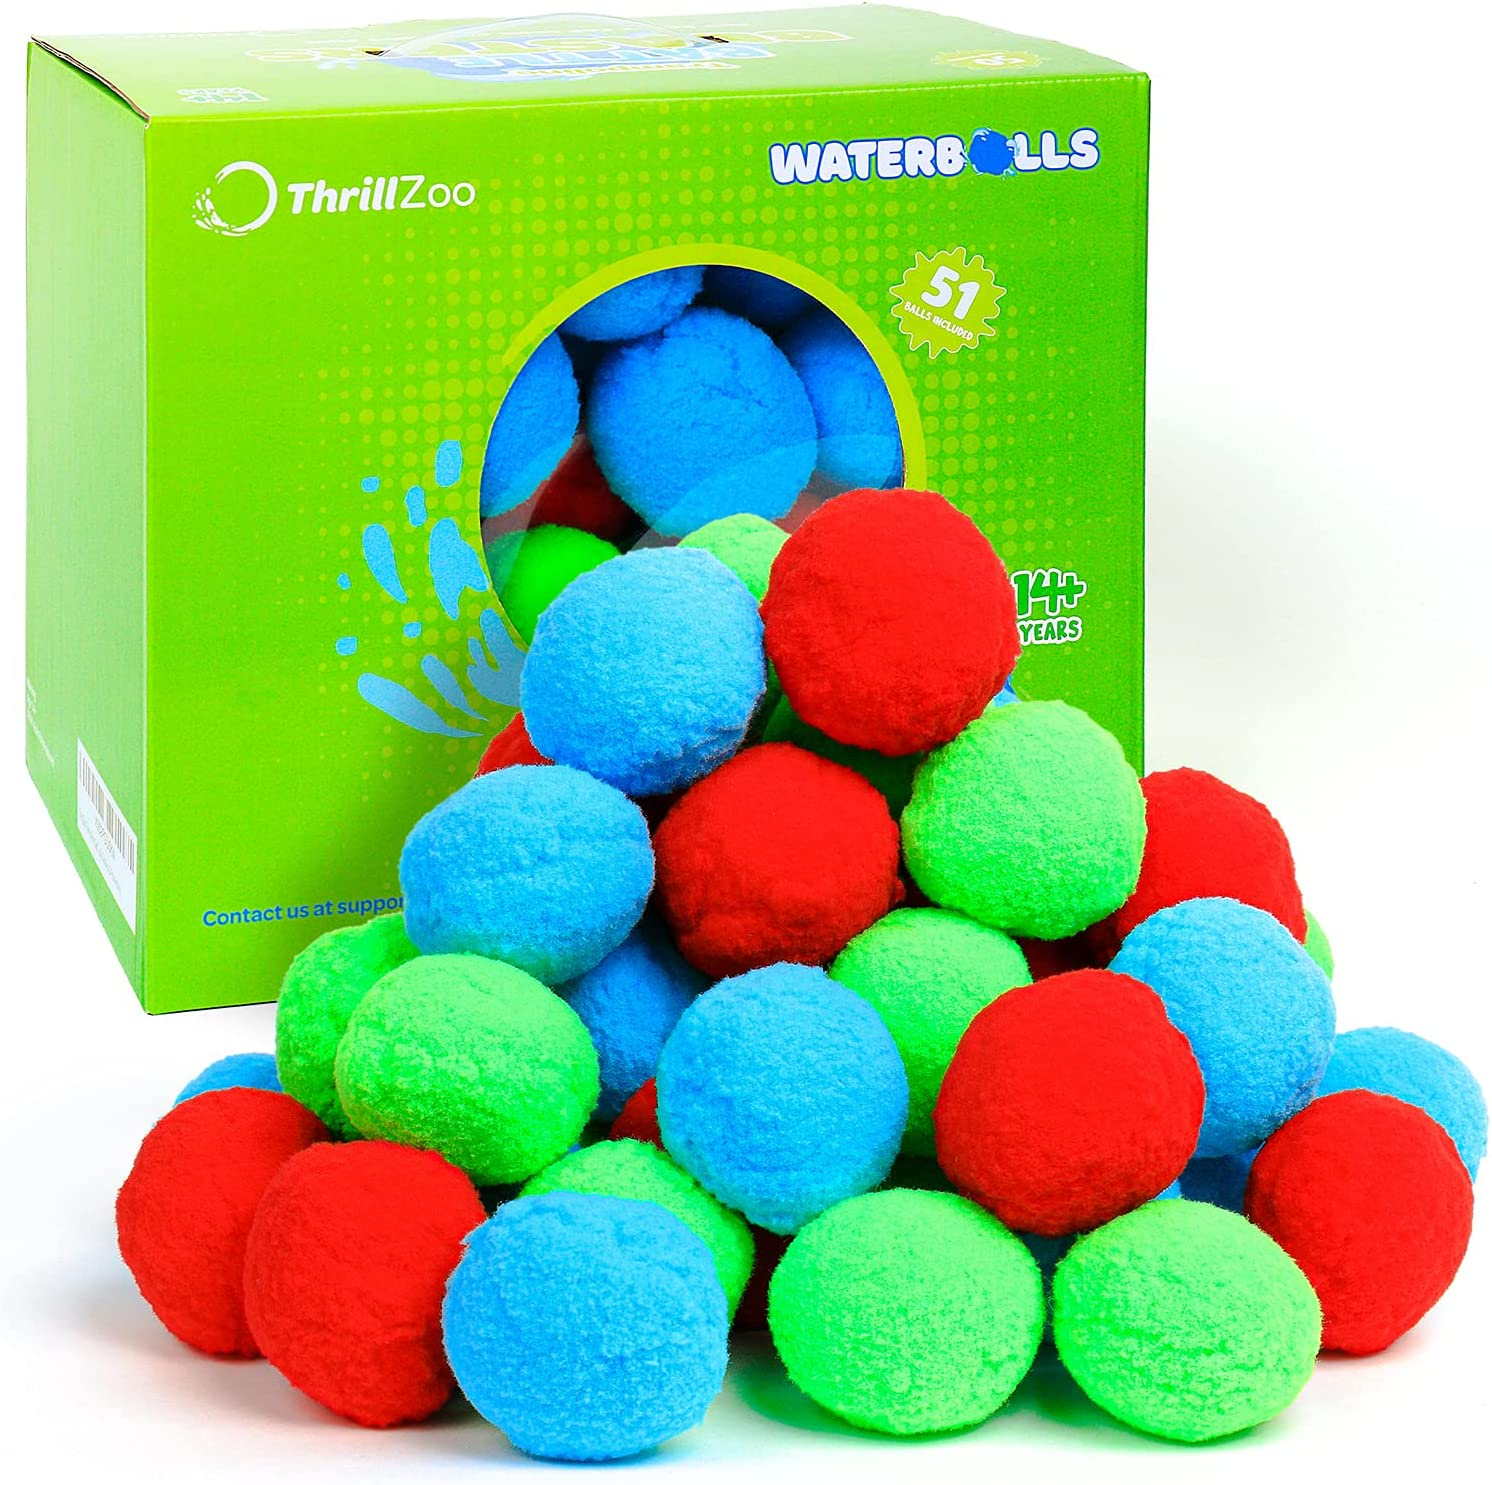 reusable water balloons, check out these from ThrillZoo